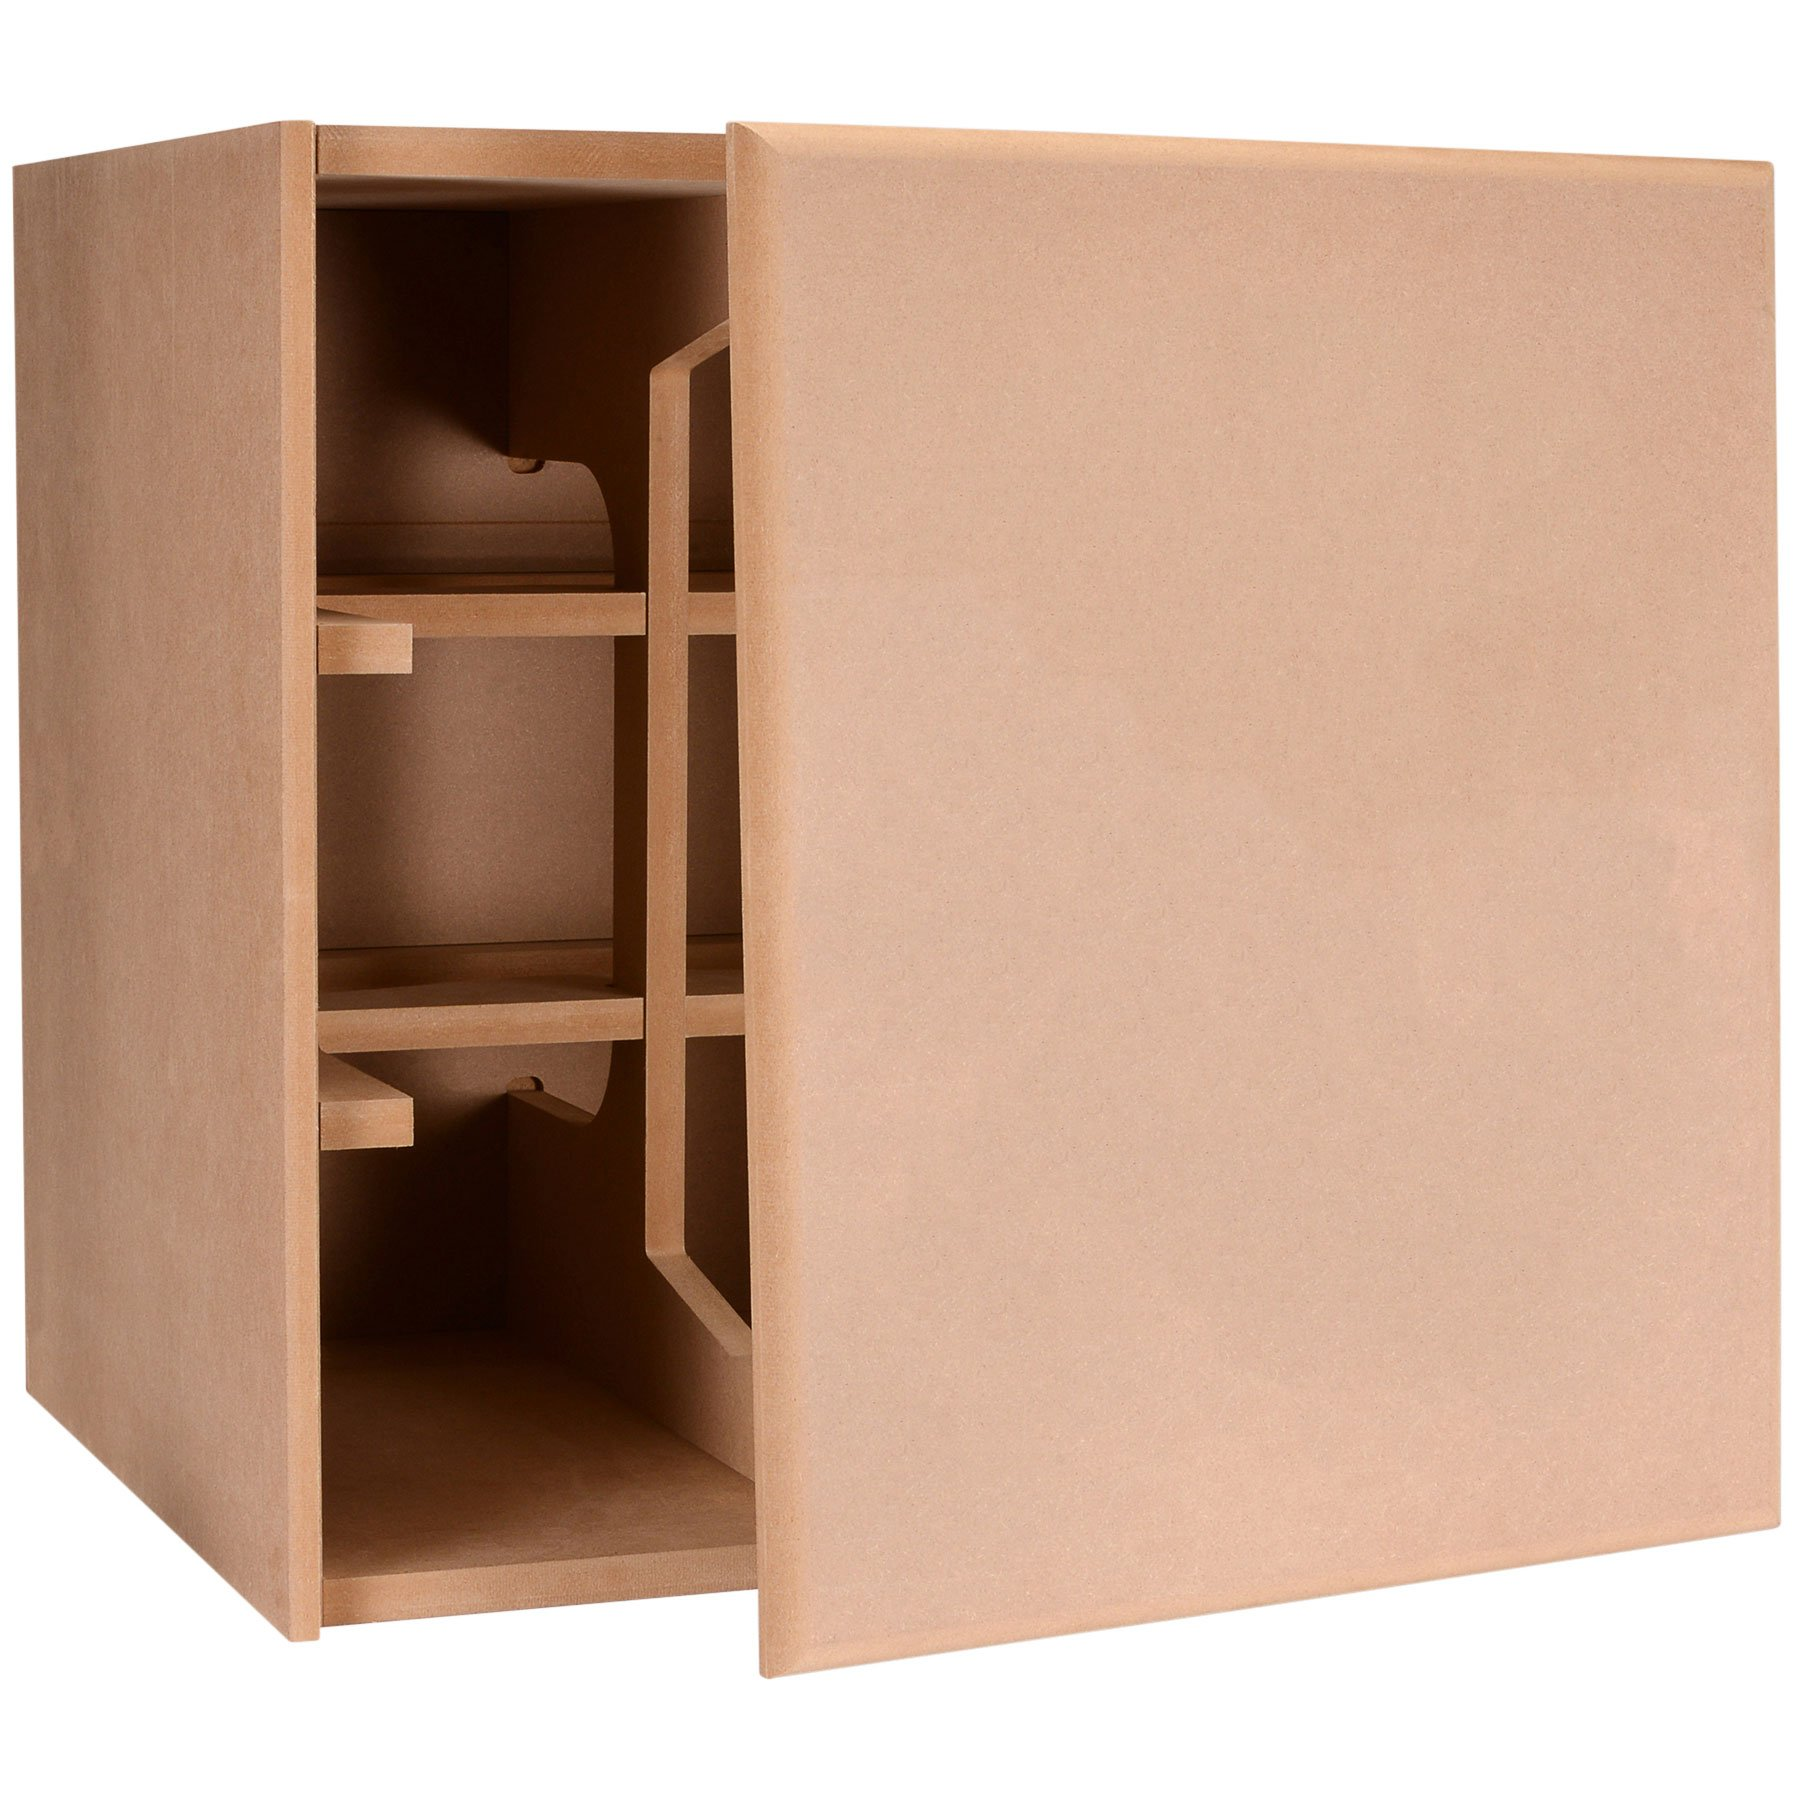 Denovo Audio Knock-Down MDF 4.0 cu. ft. Subwoofer Cabinet with Blank Baffle